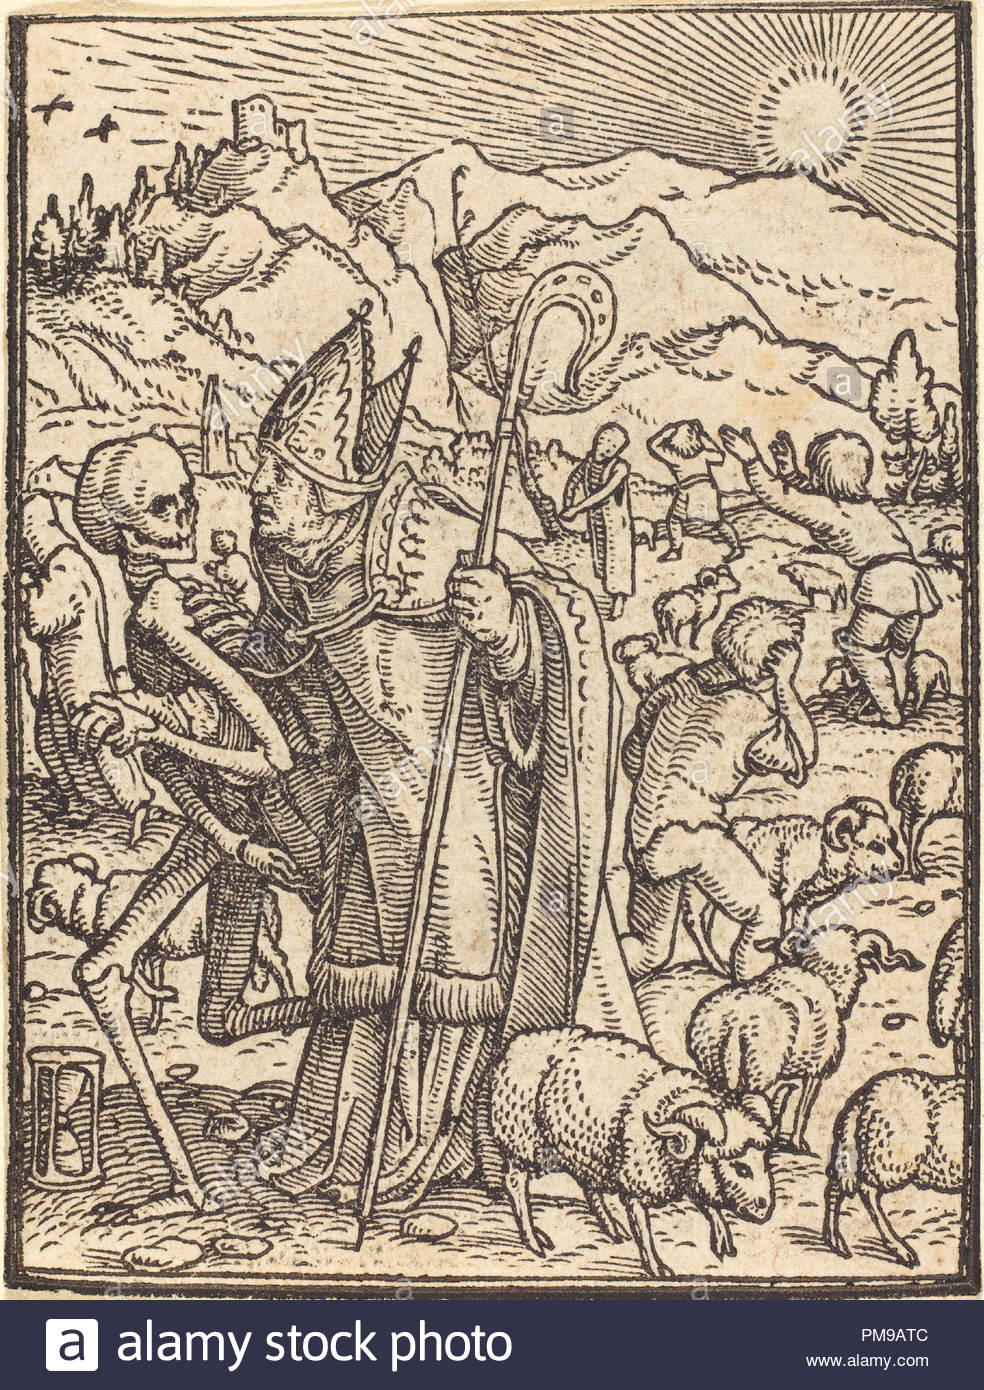 Bishop. Medium: woodcut. Museum: National Gallery of Art, Washington DC. Author: Hans Holbein the Younger. - Stock Image